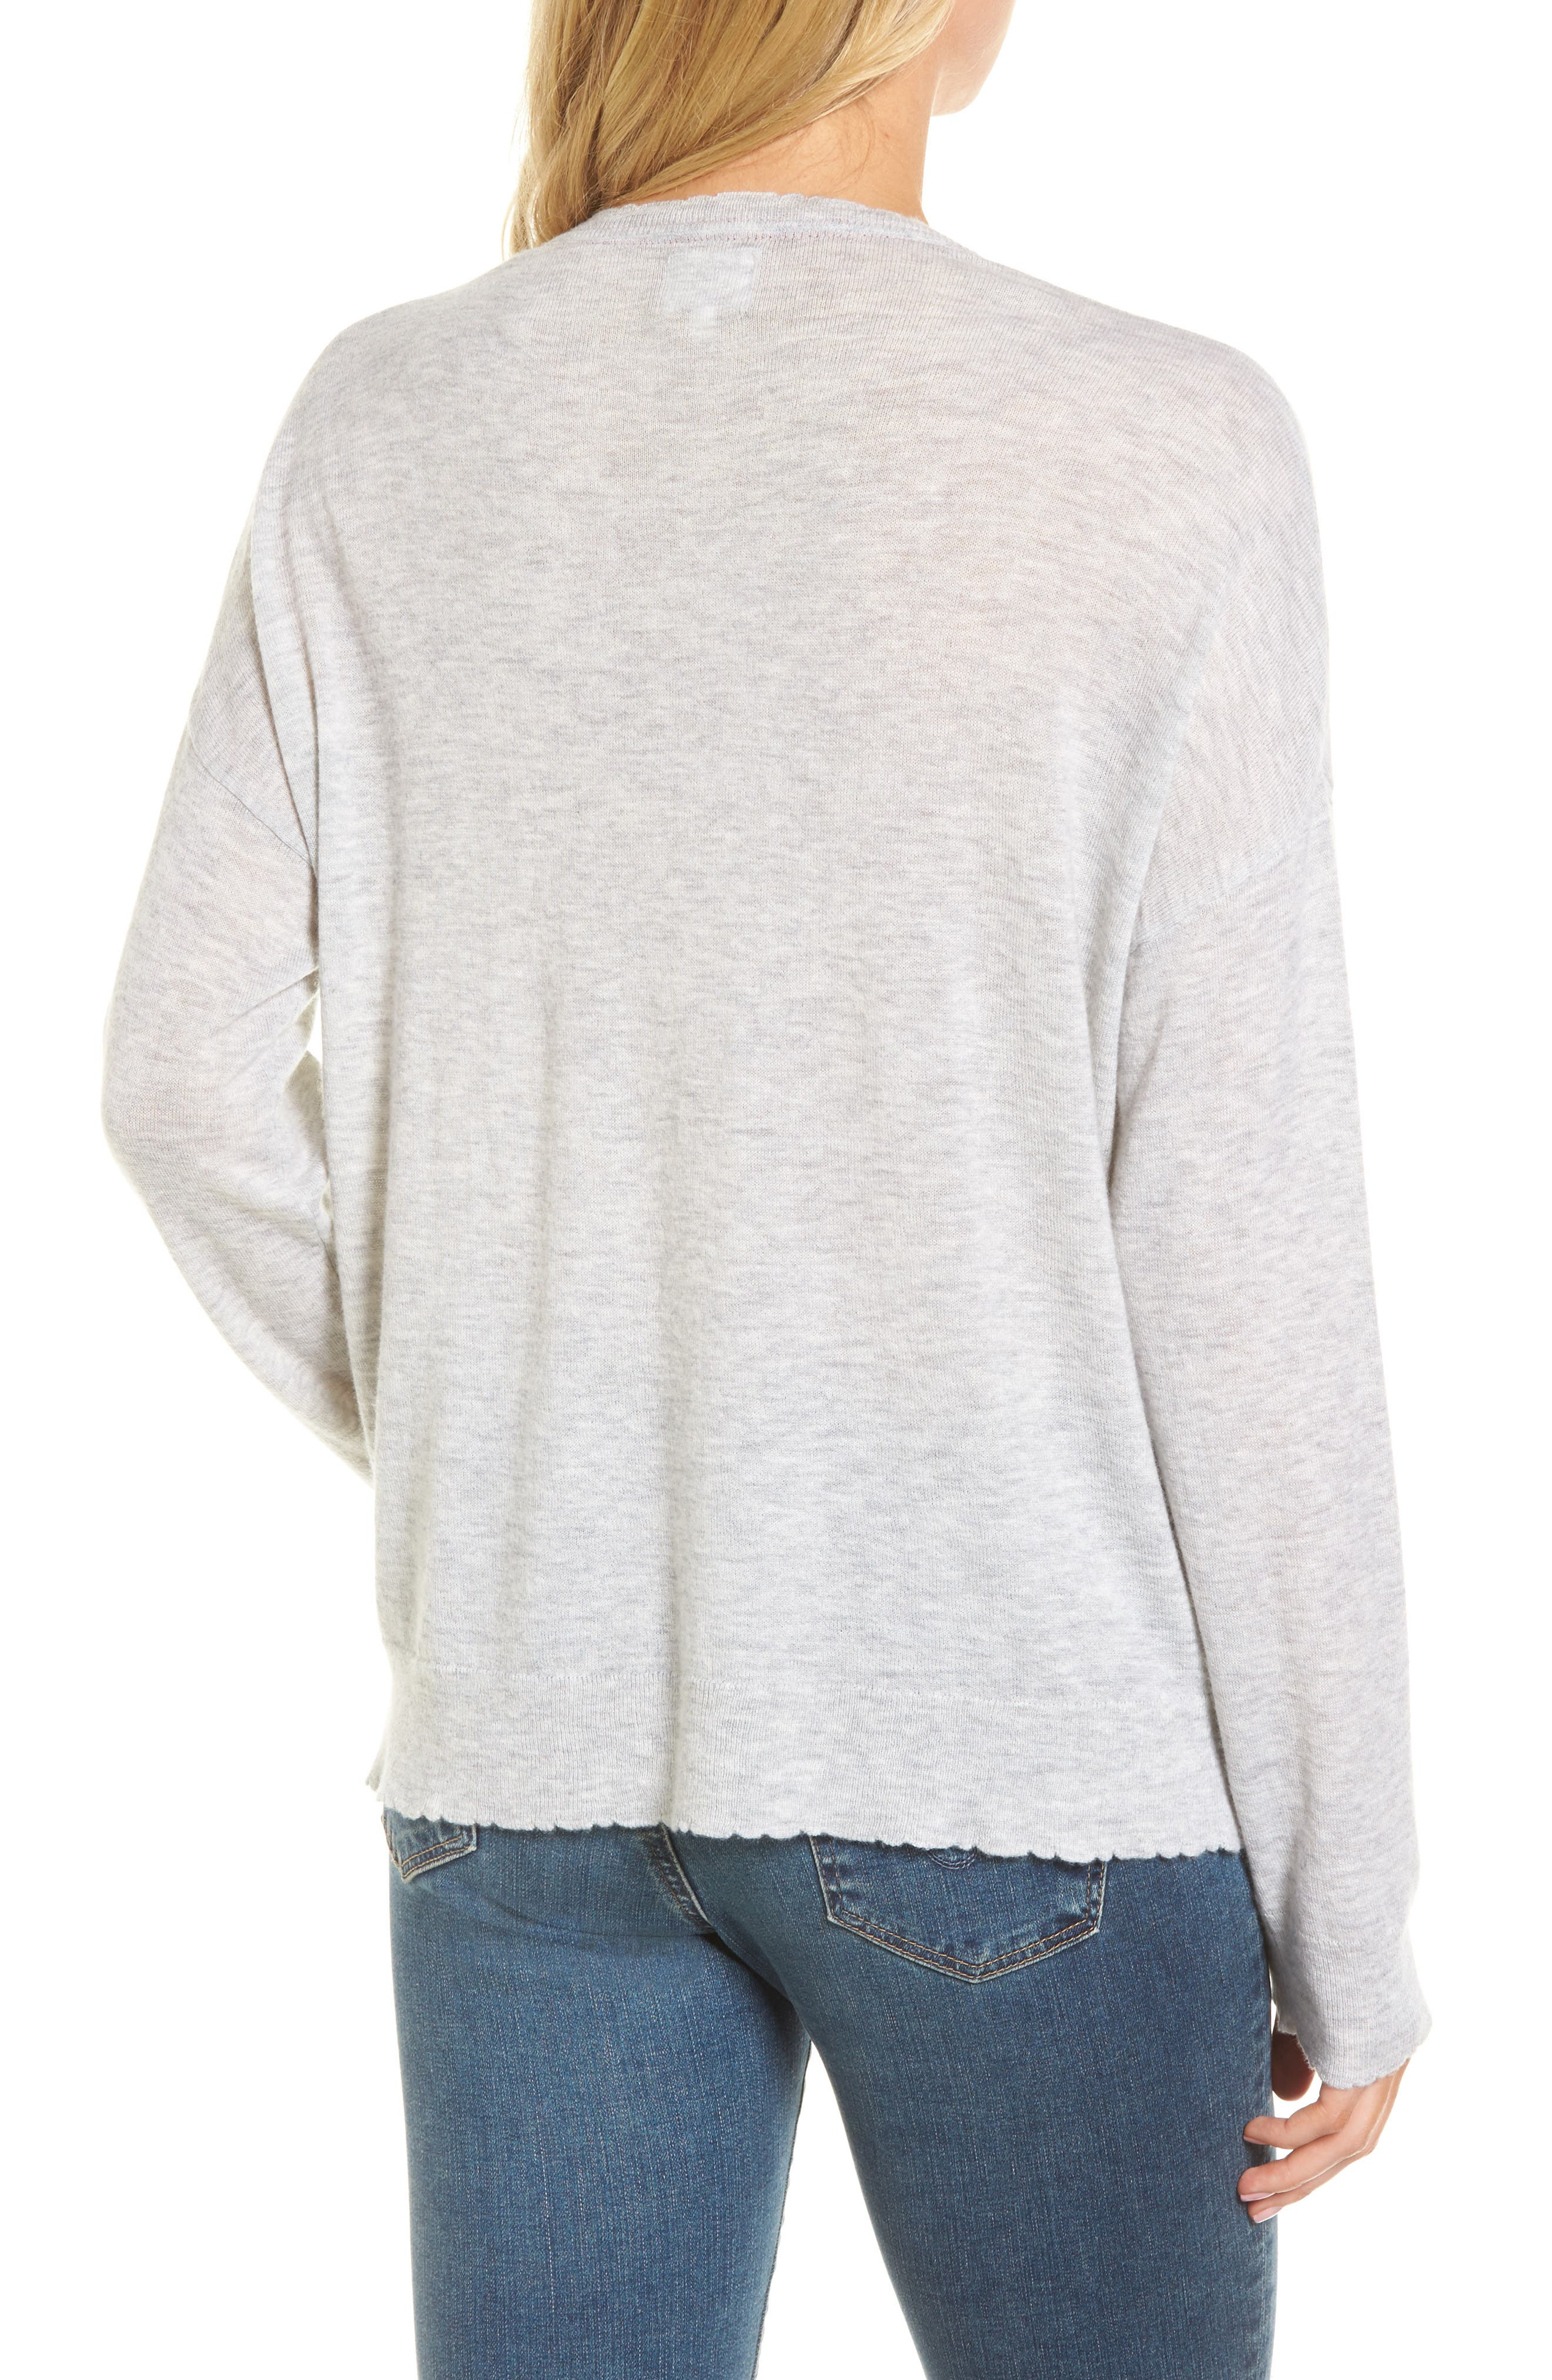 Stars Wool & Cashmere Sweater,                             Alternate thumbnail 2, color,                             Heather Grey